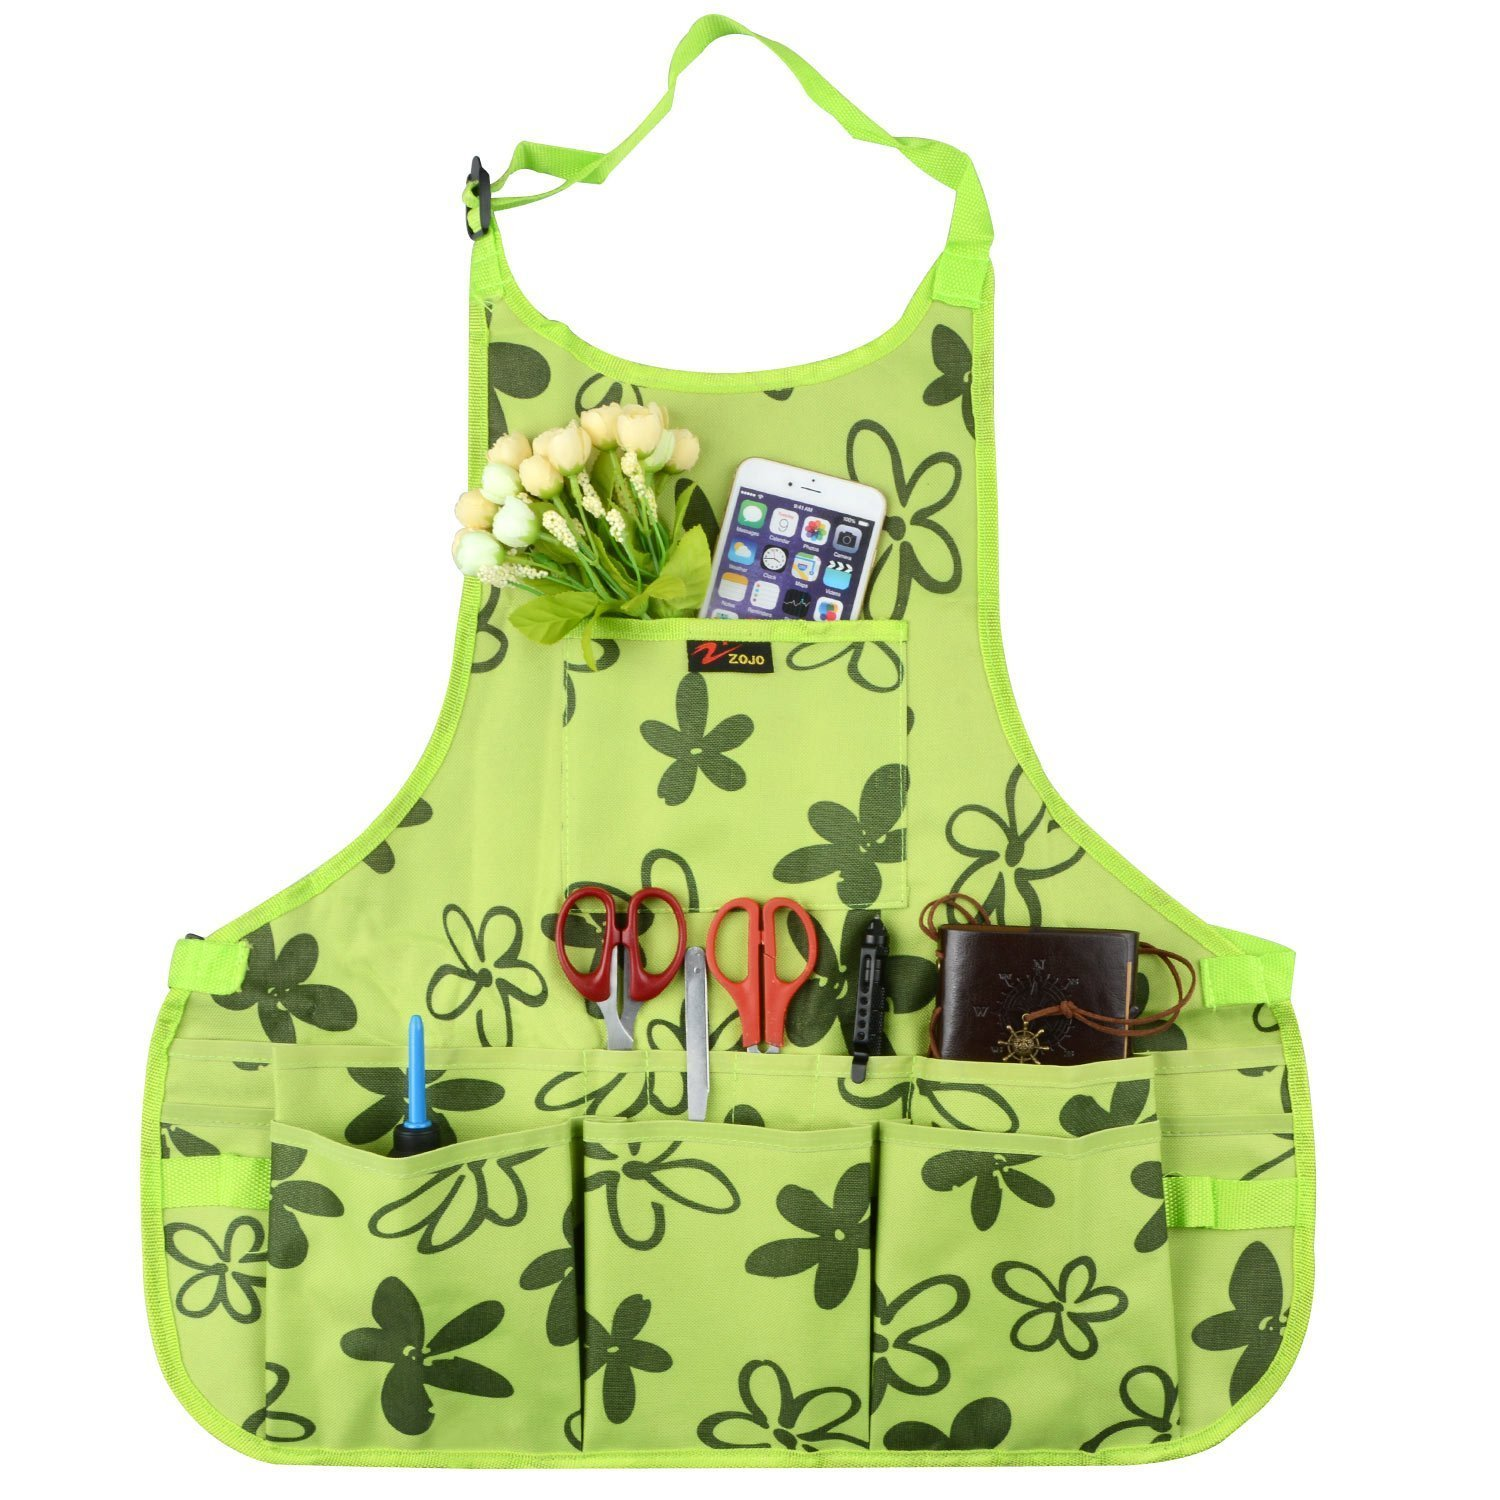 Hitommy Apron 600D Oxford Work Aprons Grilling Tools Gardening Painting Apron Workers Apron with Tool Pockets and Adjustable Belt for Women WQ1 - women